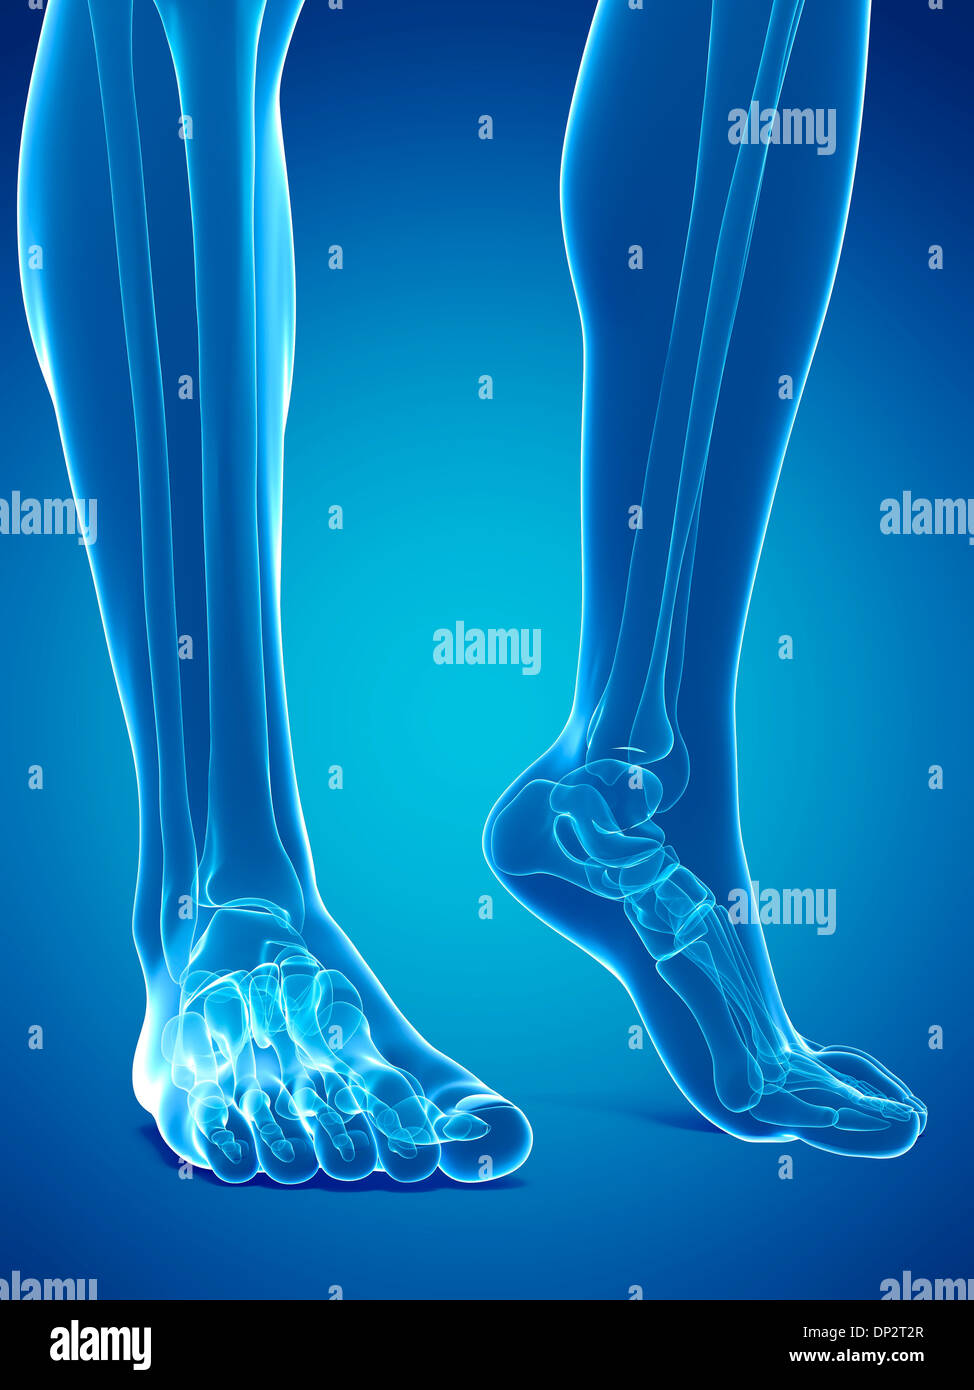 Bones of the feet, artwork Stock Photo: 65216335 - Alamy